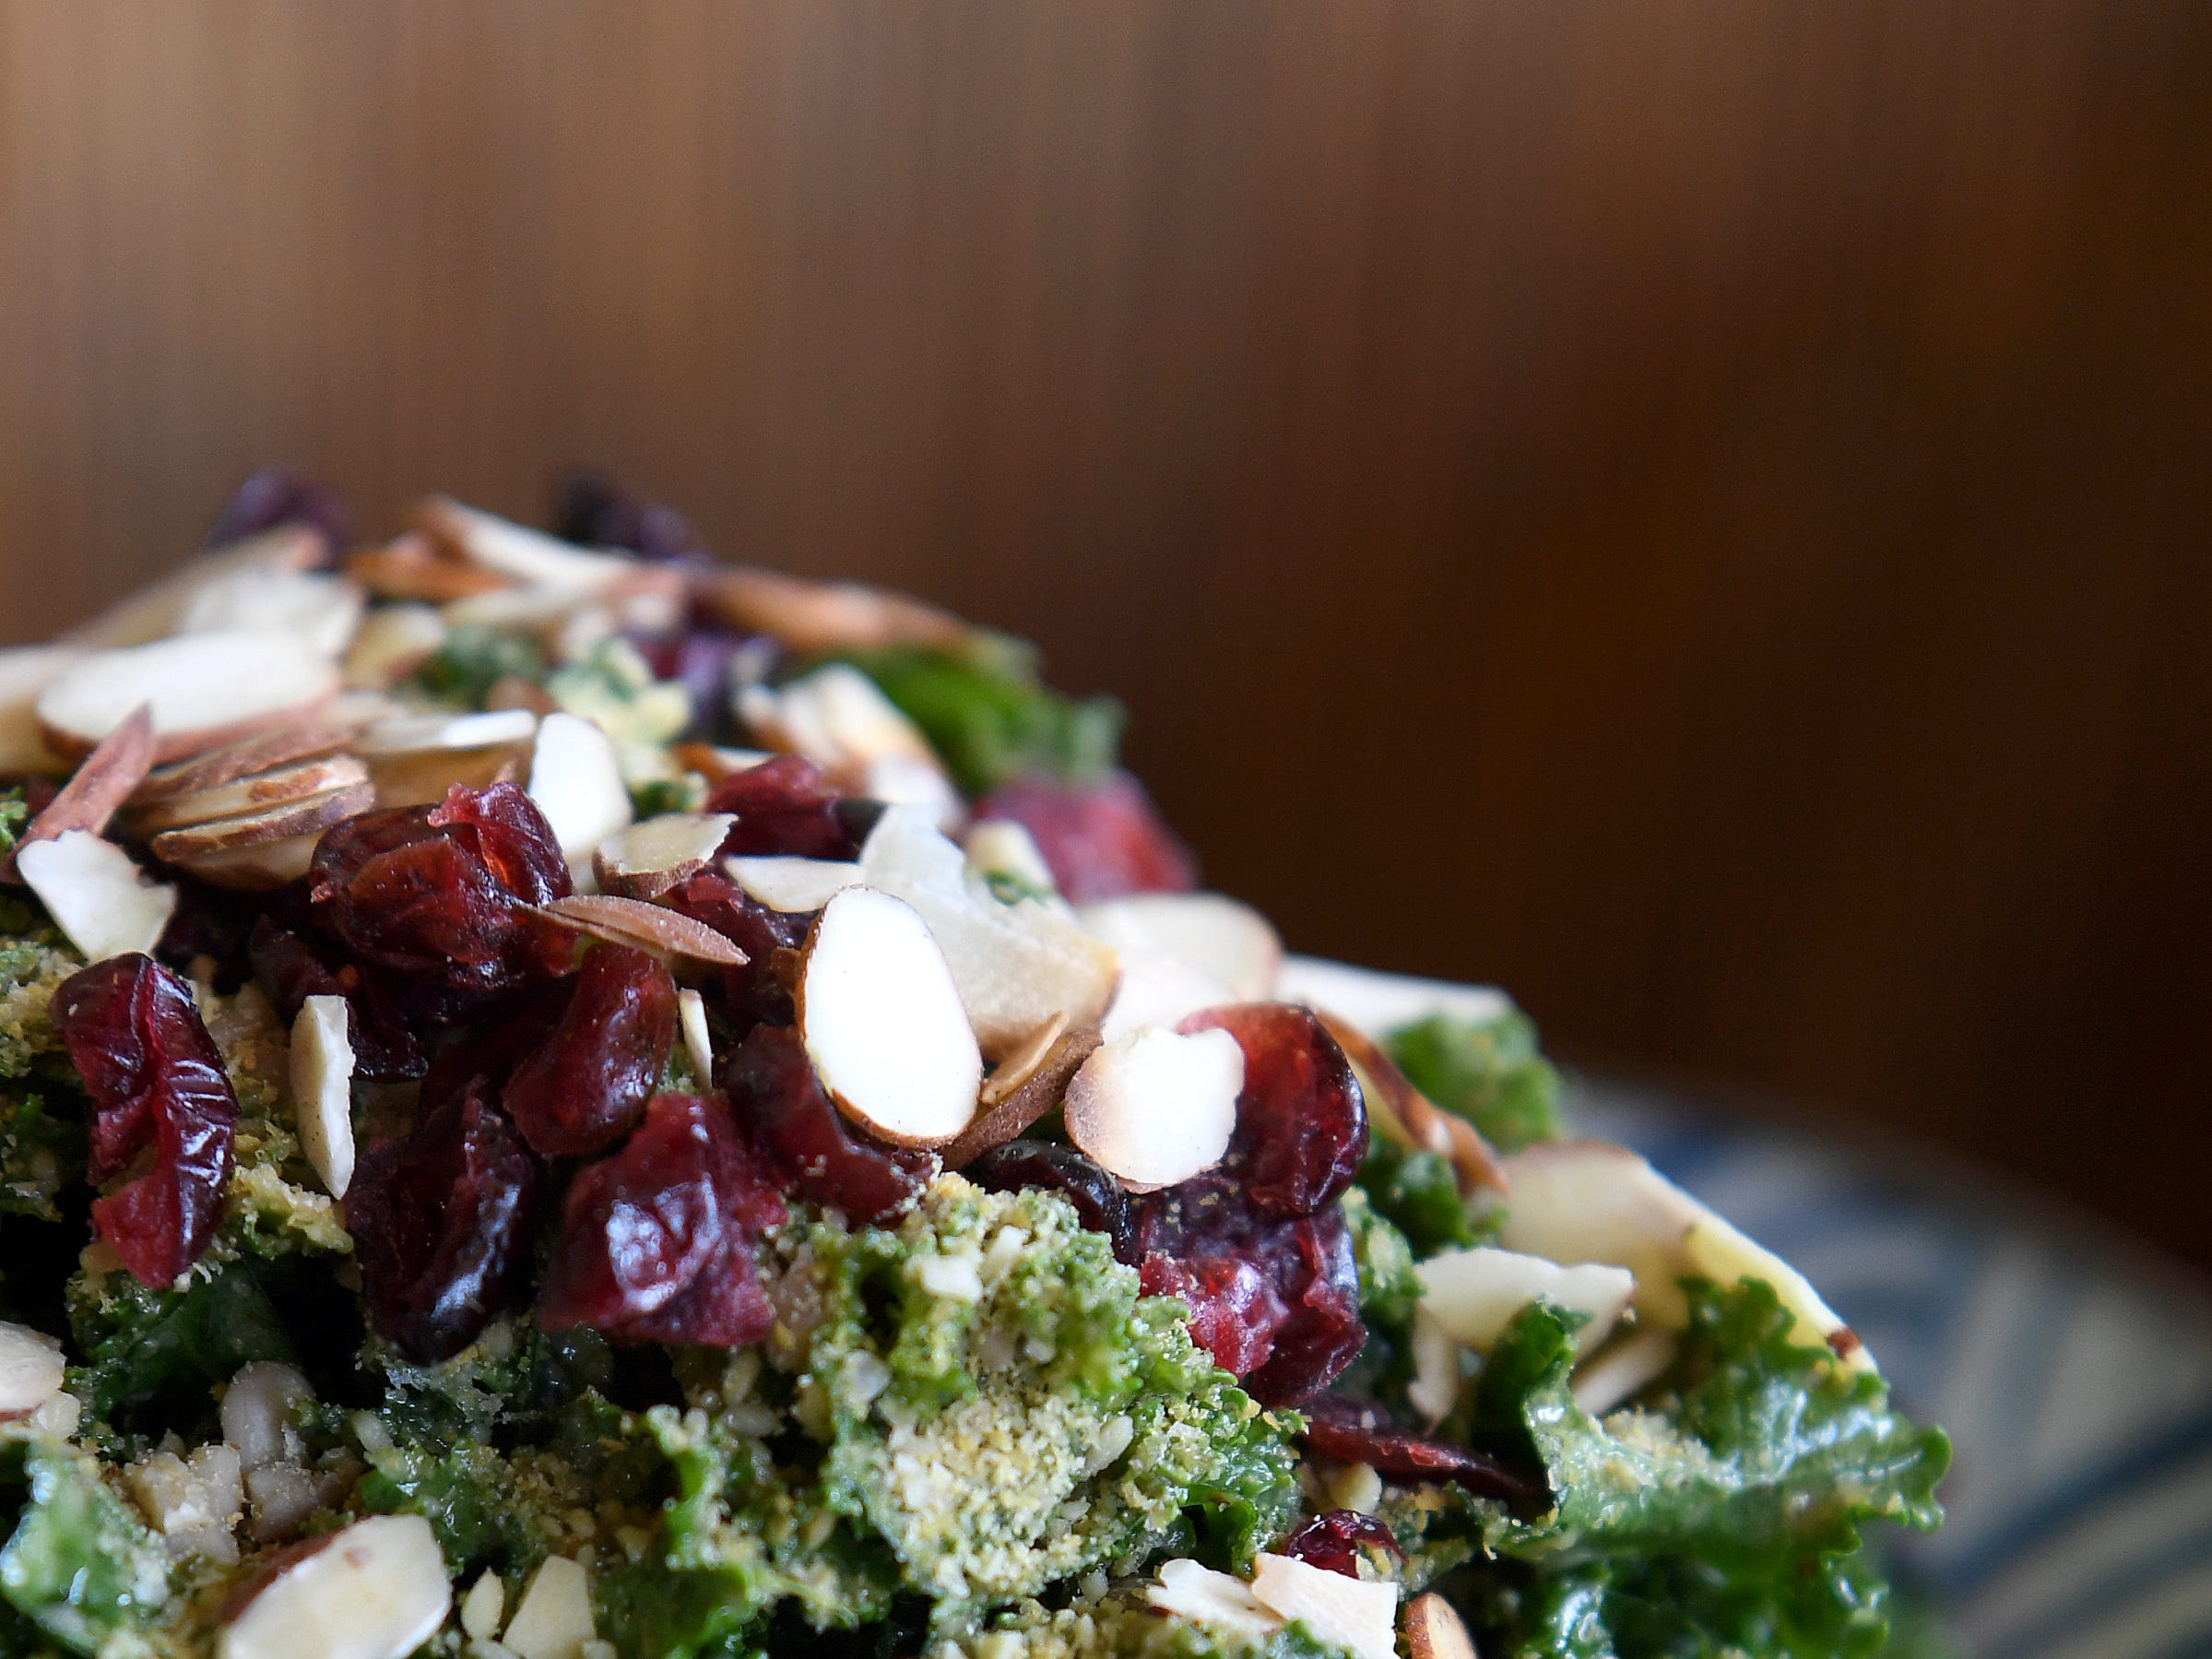 The kale caesar salad at Dobra Tea's West Asheville location is tossed in dairy-free caesar dressing and topped with dried cranberries, sliced almonds and vegan seed parmesan.